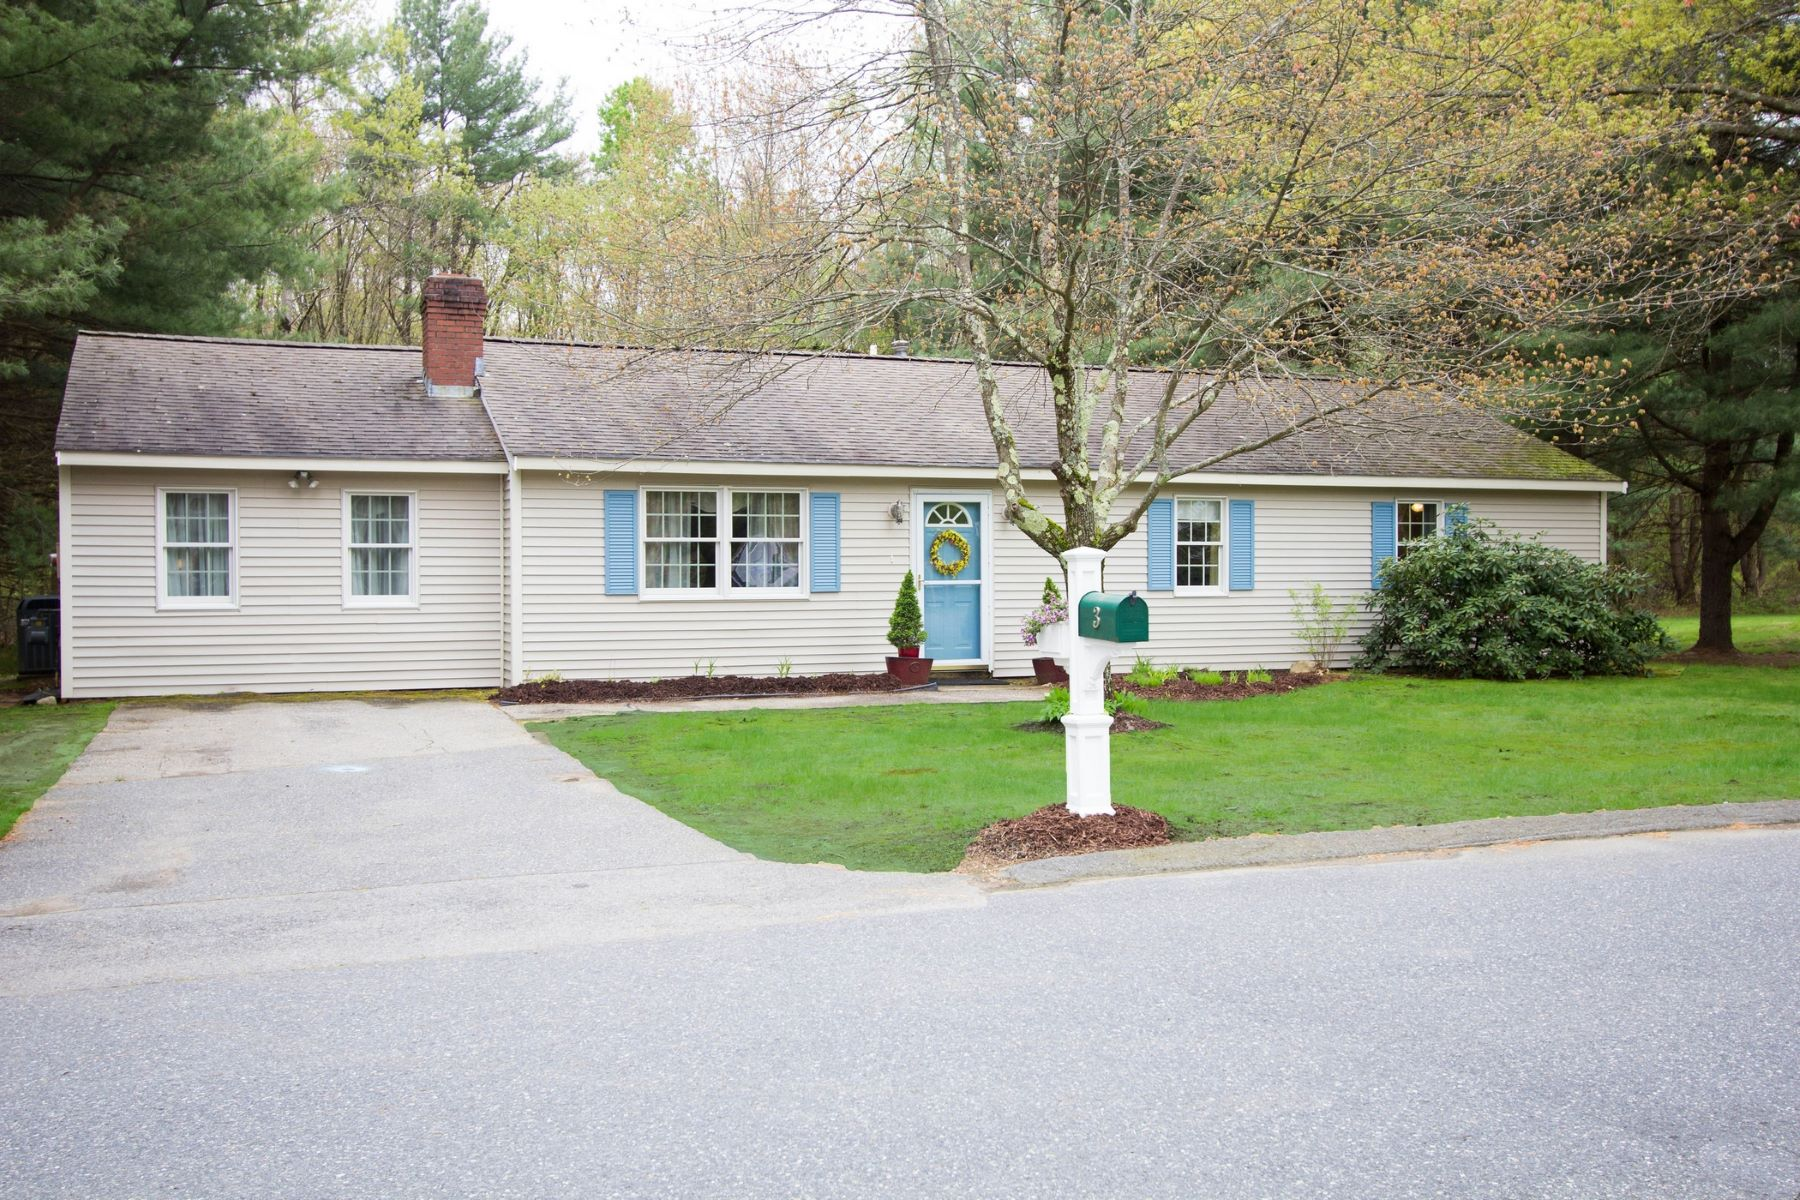 Single Family Homes for Active at 3 Nick Lane, Maynard 3 Nick Ln Maynard, Massachusetts 01754 United States